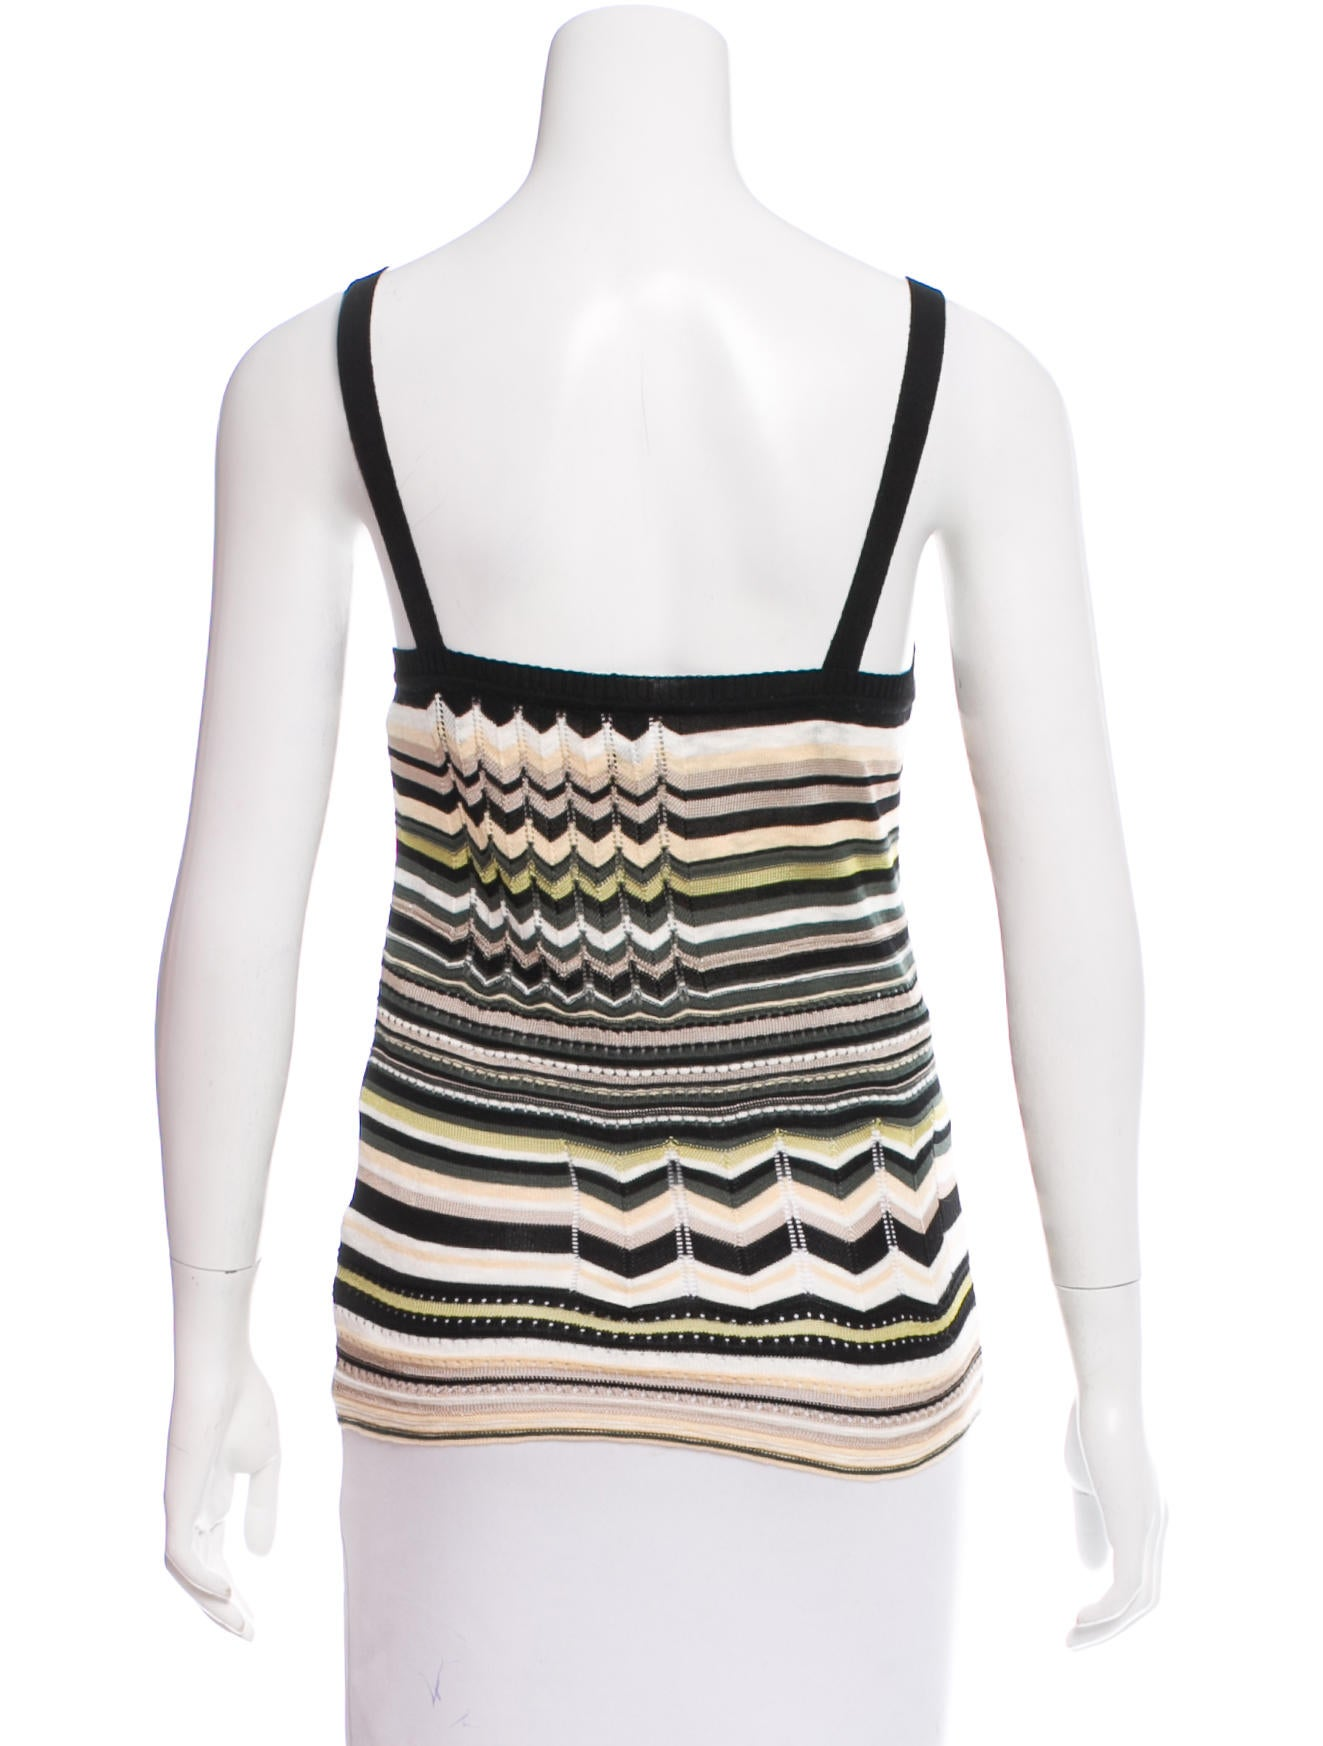 m missoni patterned sleeveless top w tags clothing wm438246 the realreal. Black Bedroom Furniture Sets. Home Design Ideas